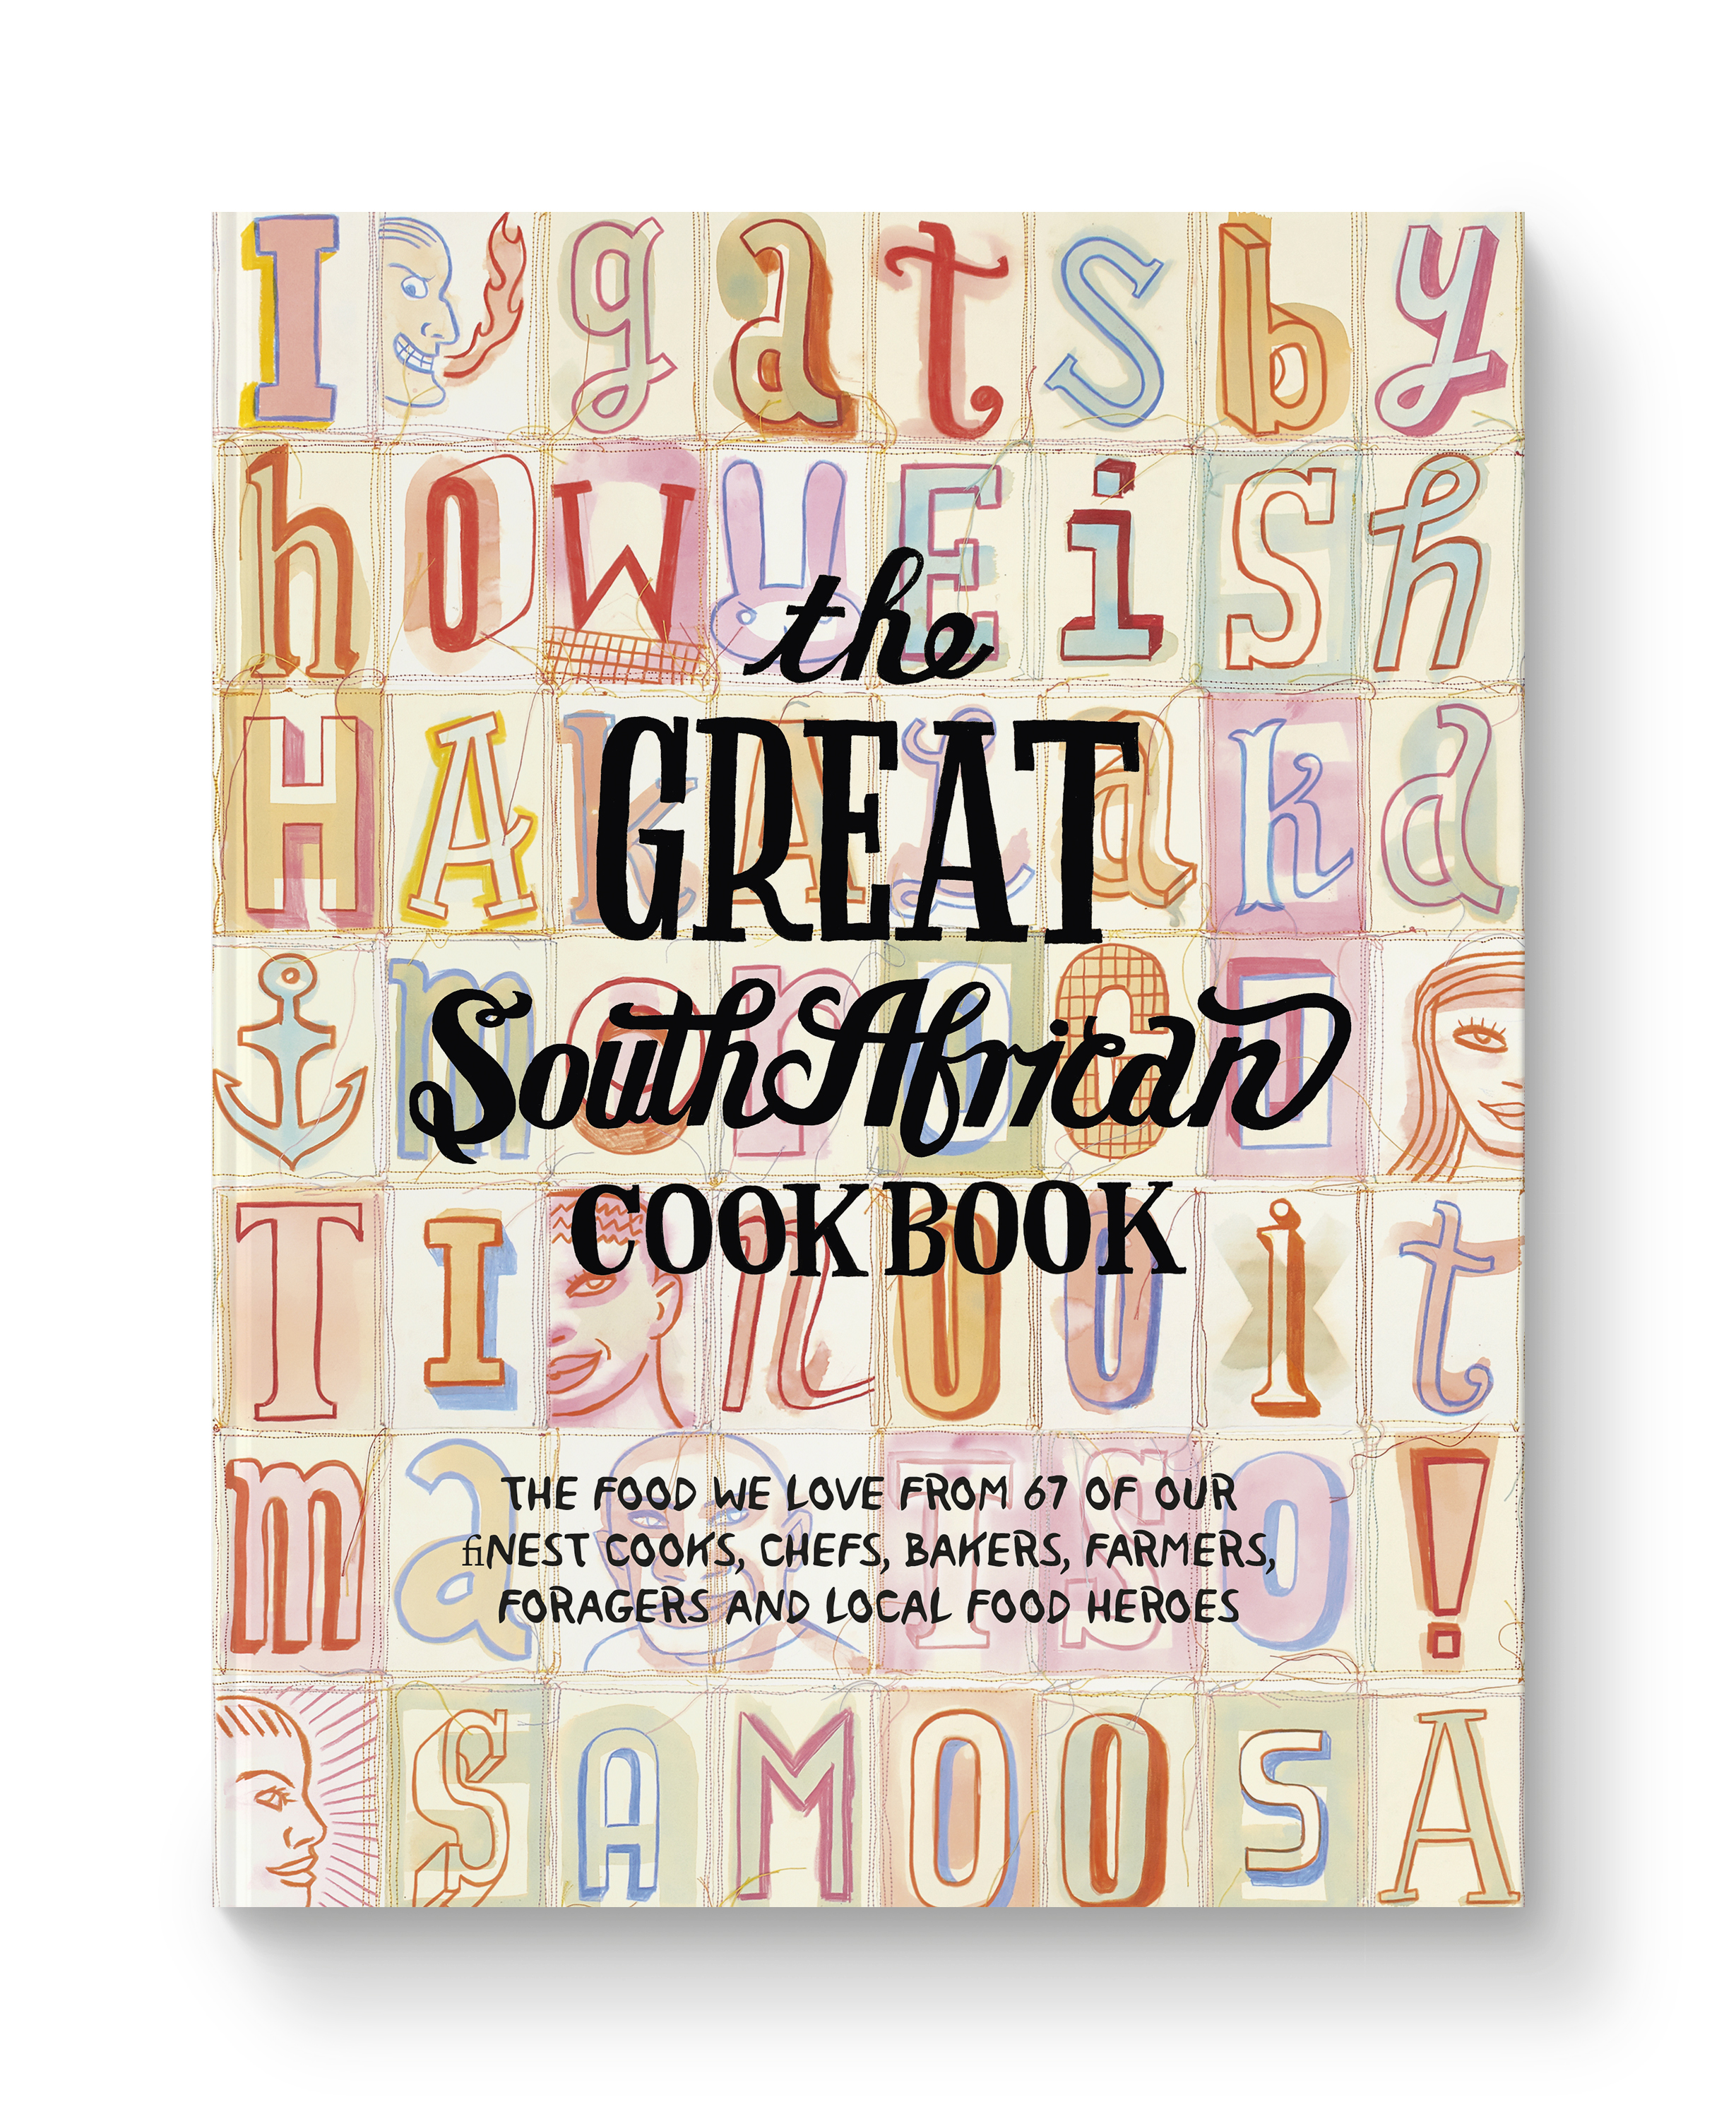 the-great-south-african-cookbook-jkt.jpg